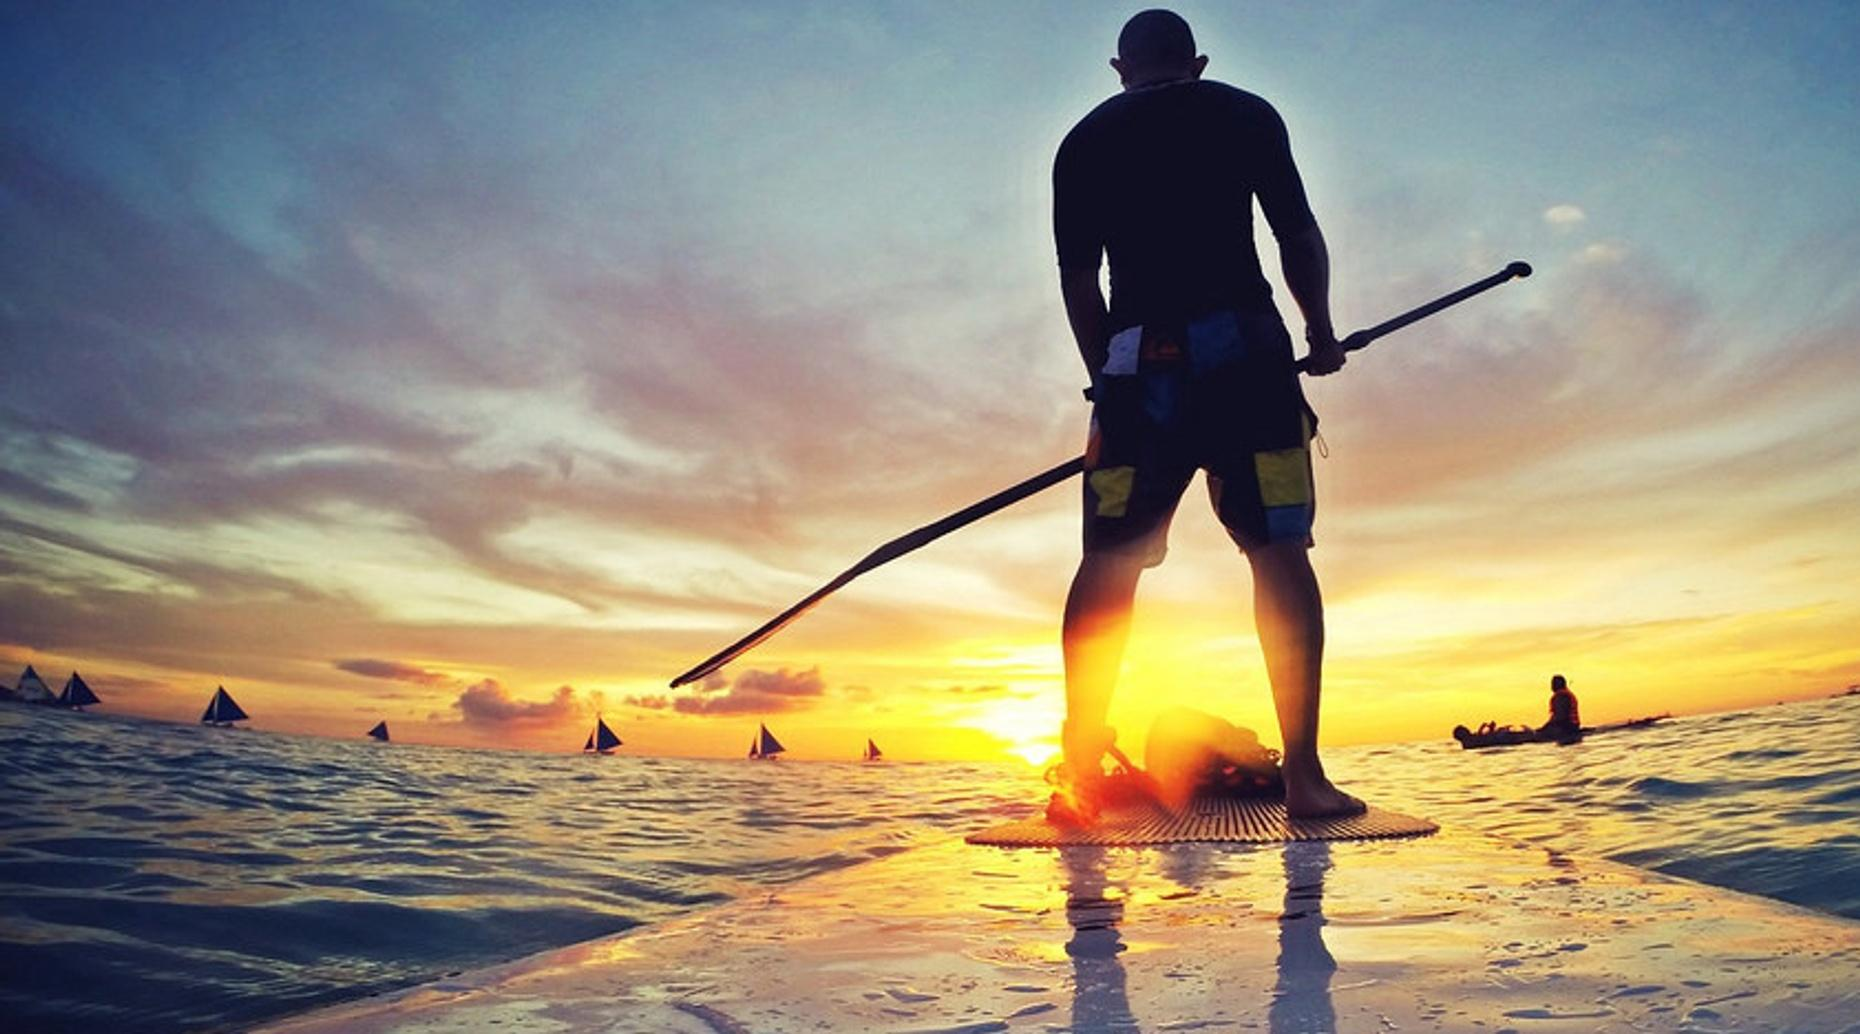 Sunset Paddleboard Tour in Miami Beach